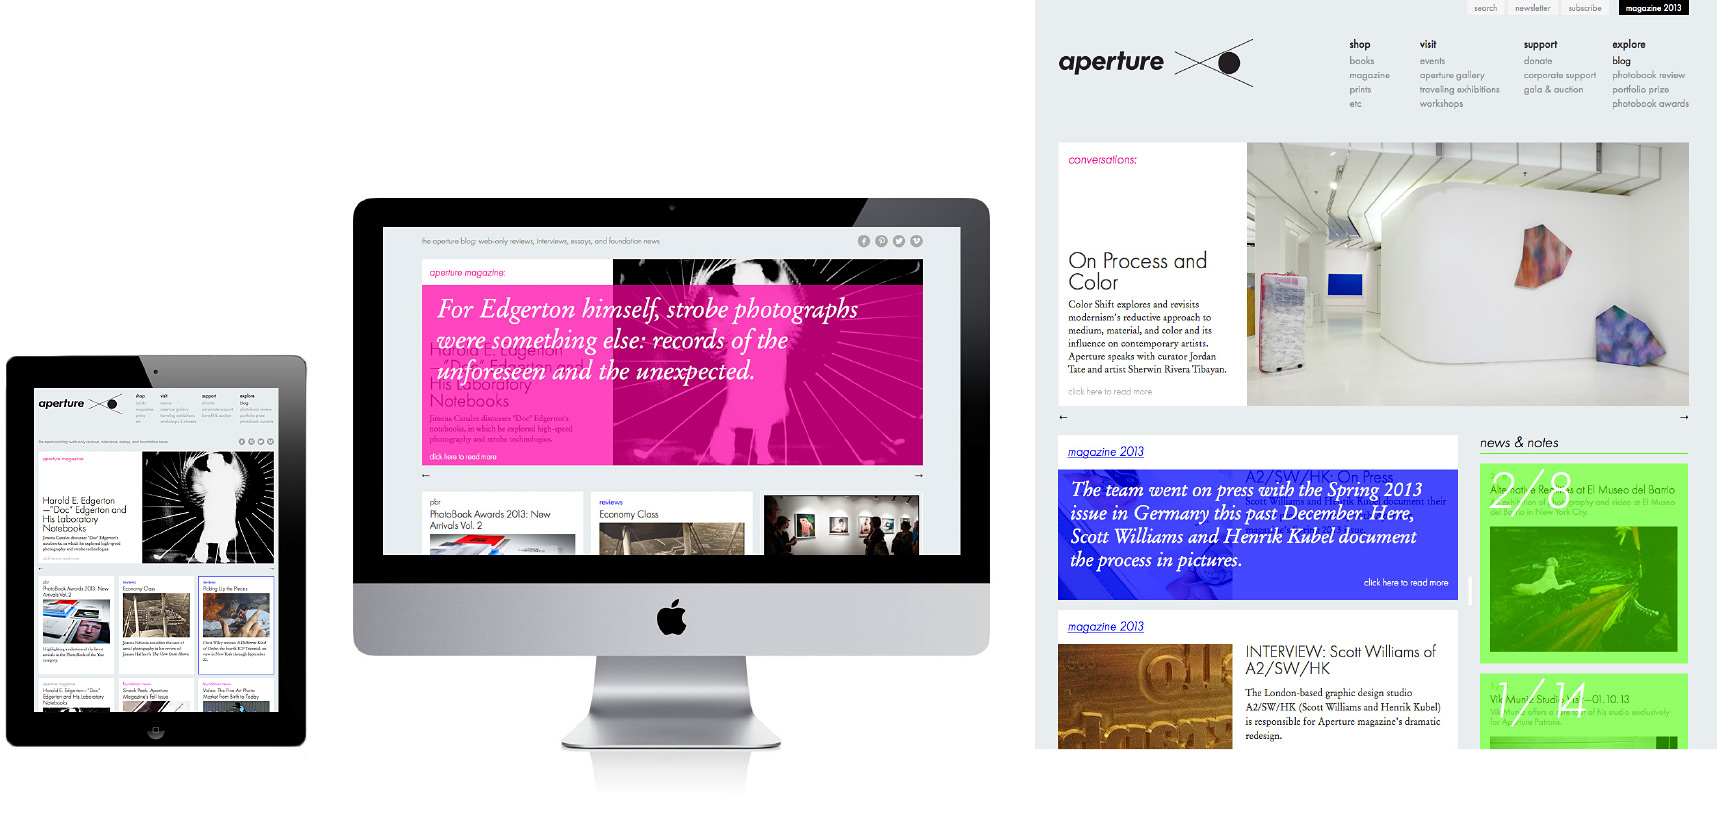 Aperture.org redesign and relaunch